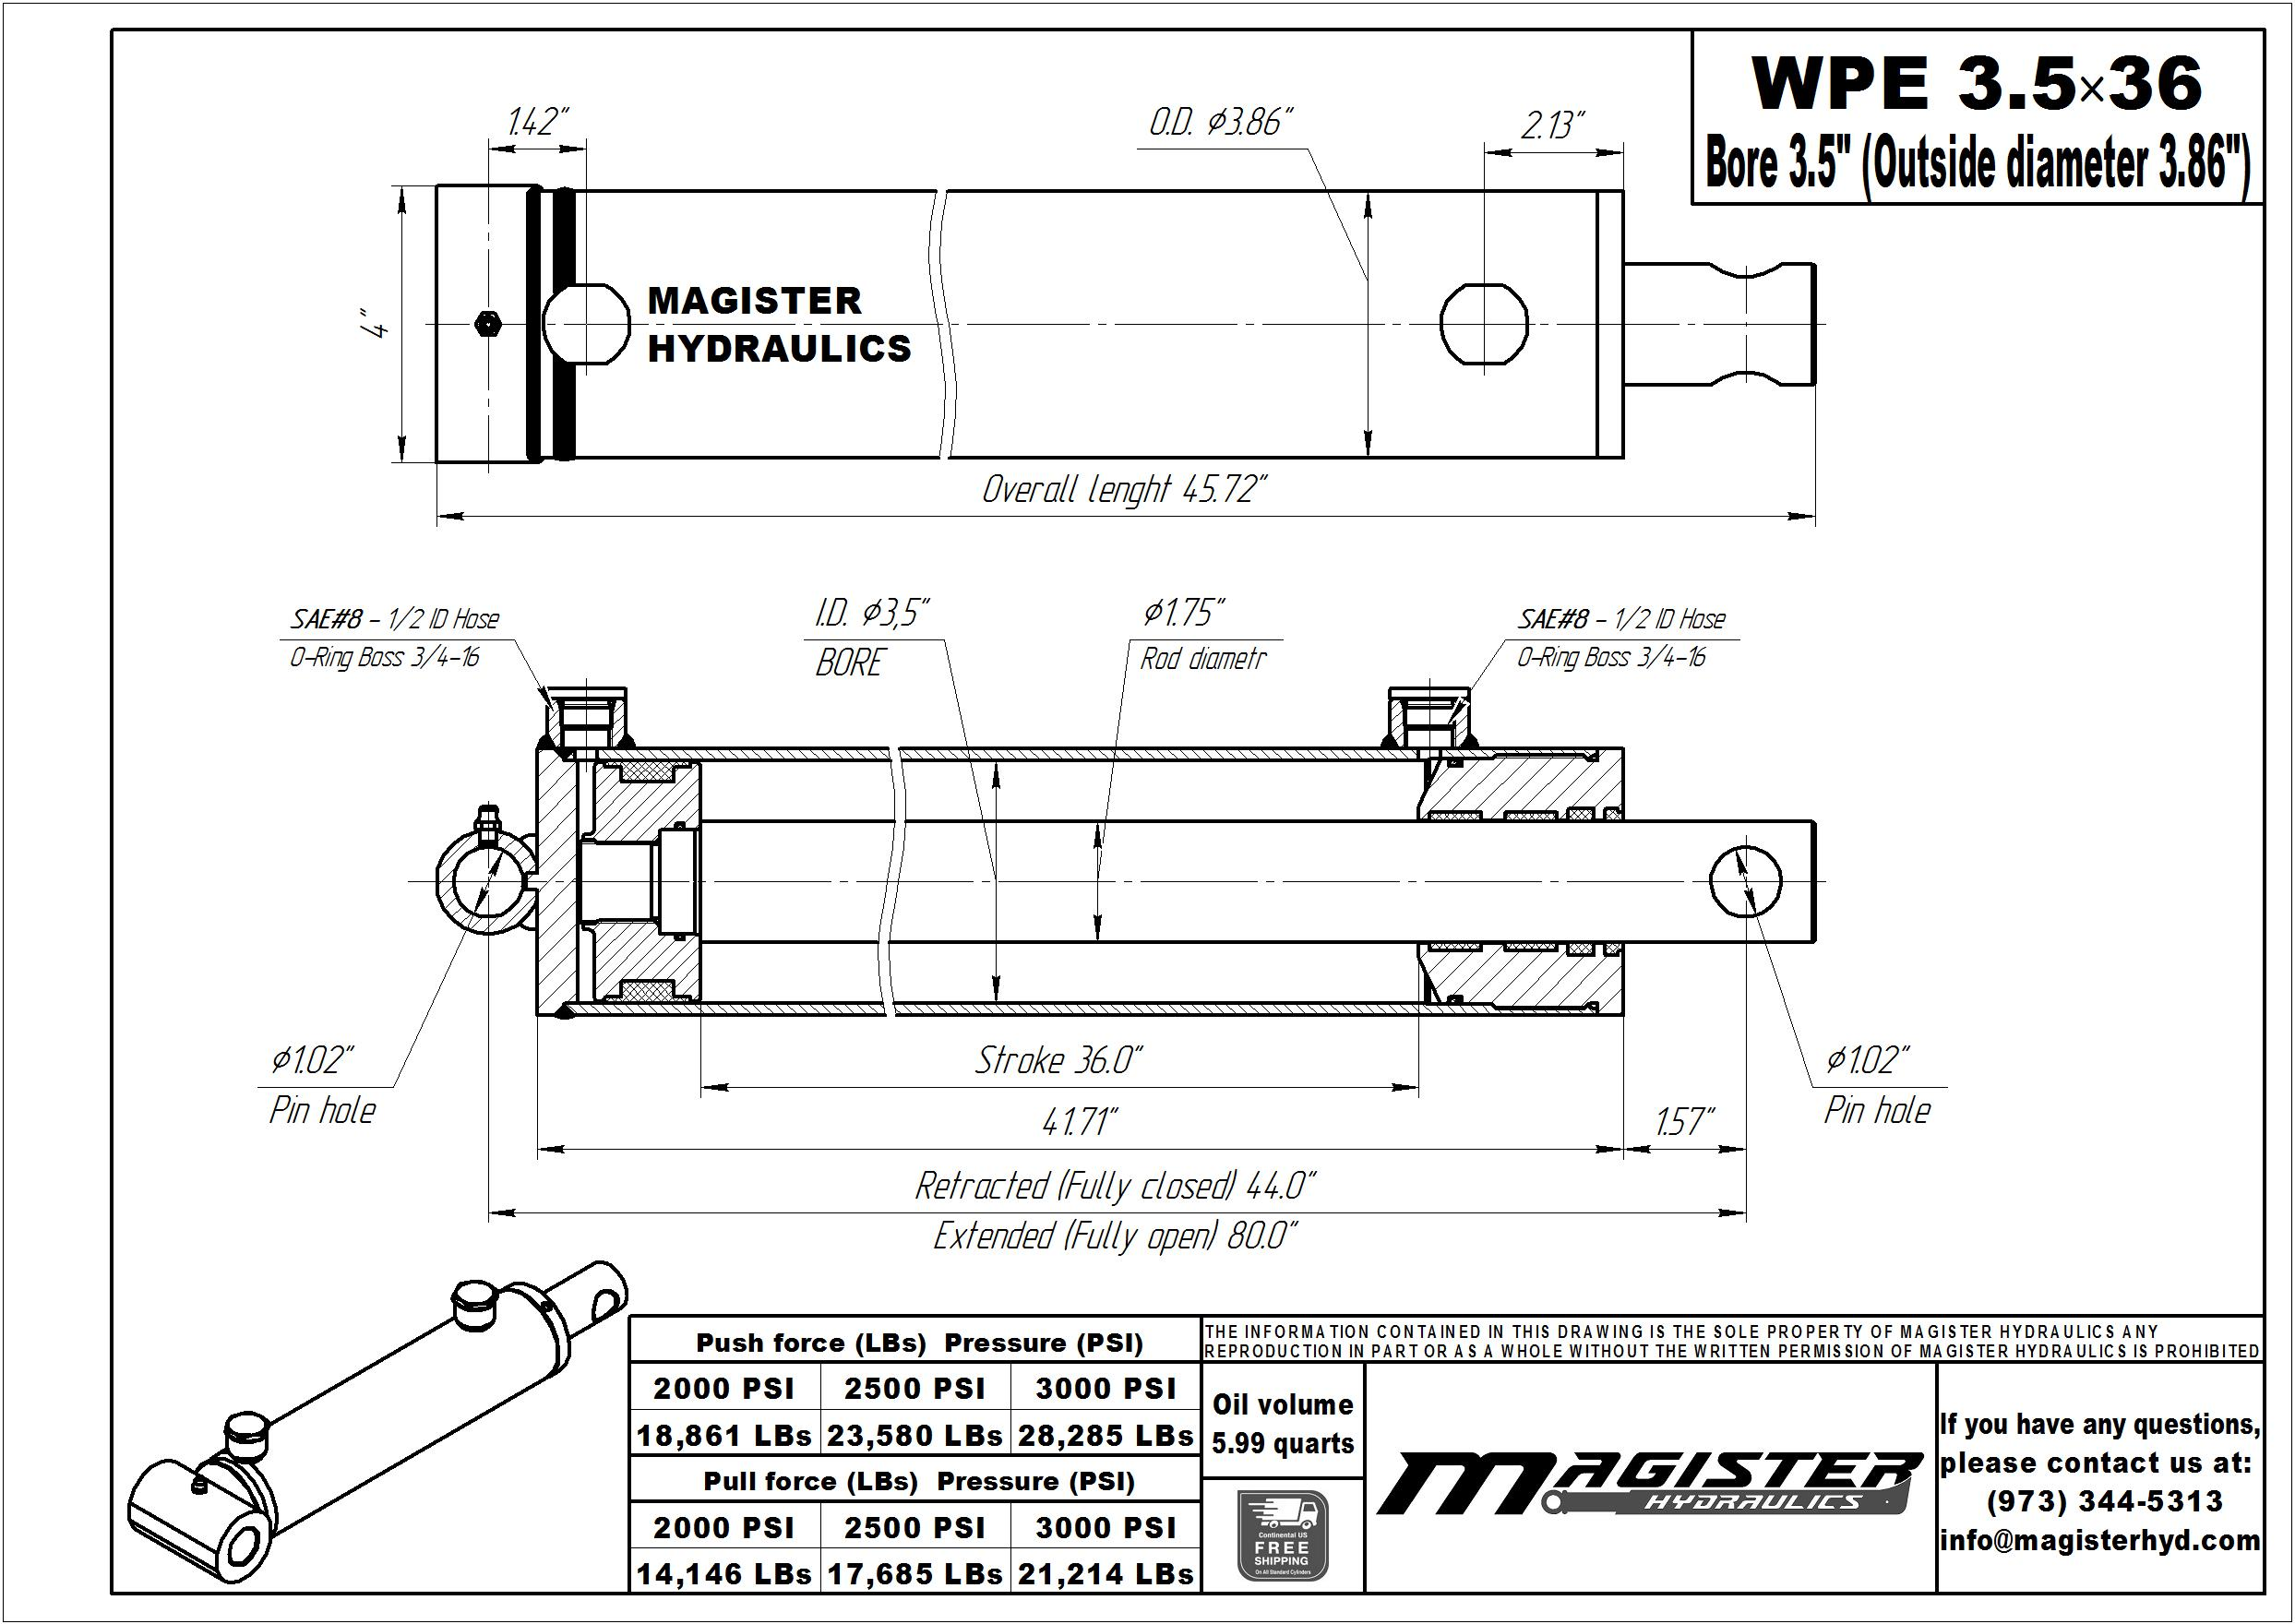 3.5 bore x 36 stroke hydraulic cylinder, welded pin eye double acting cylinder | Magister Hydraulics